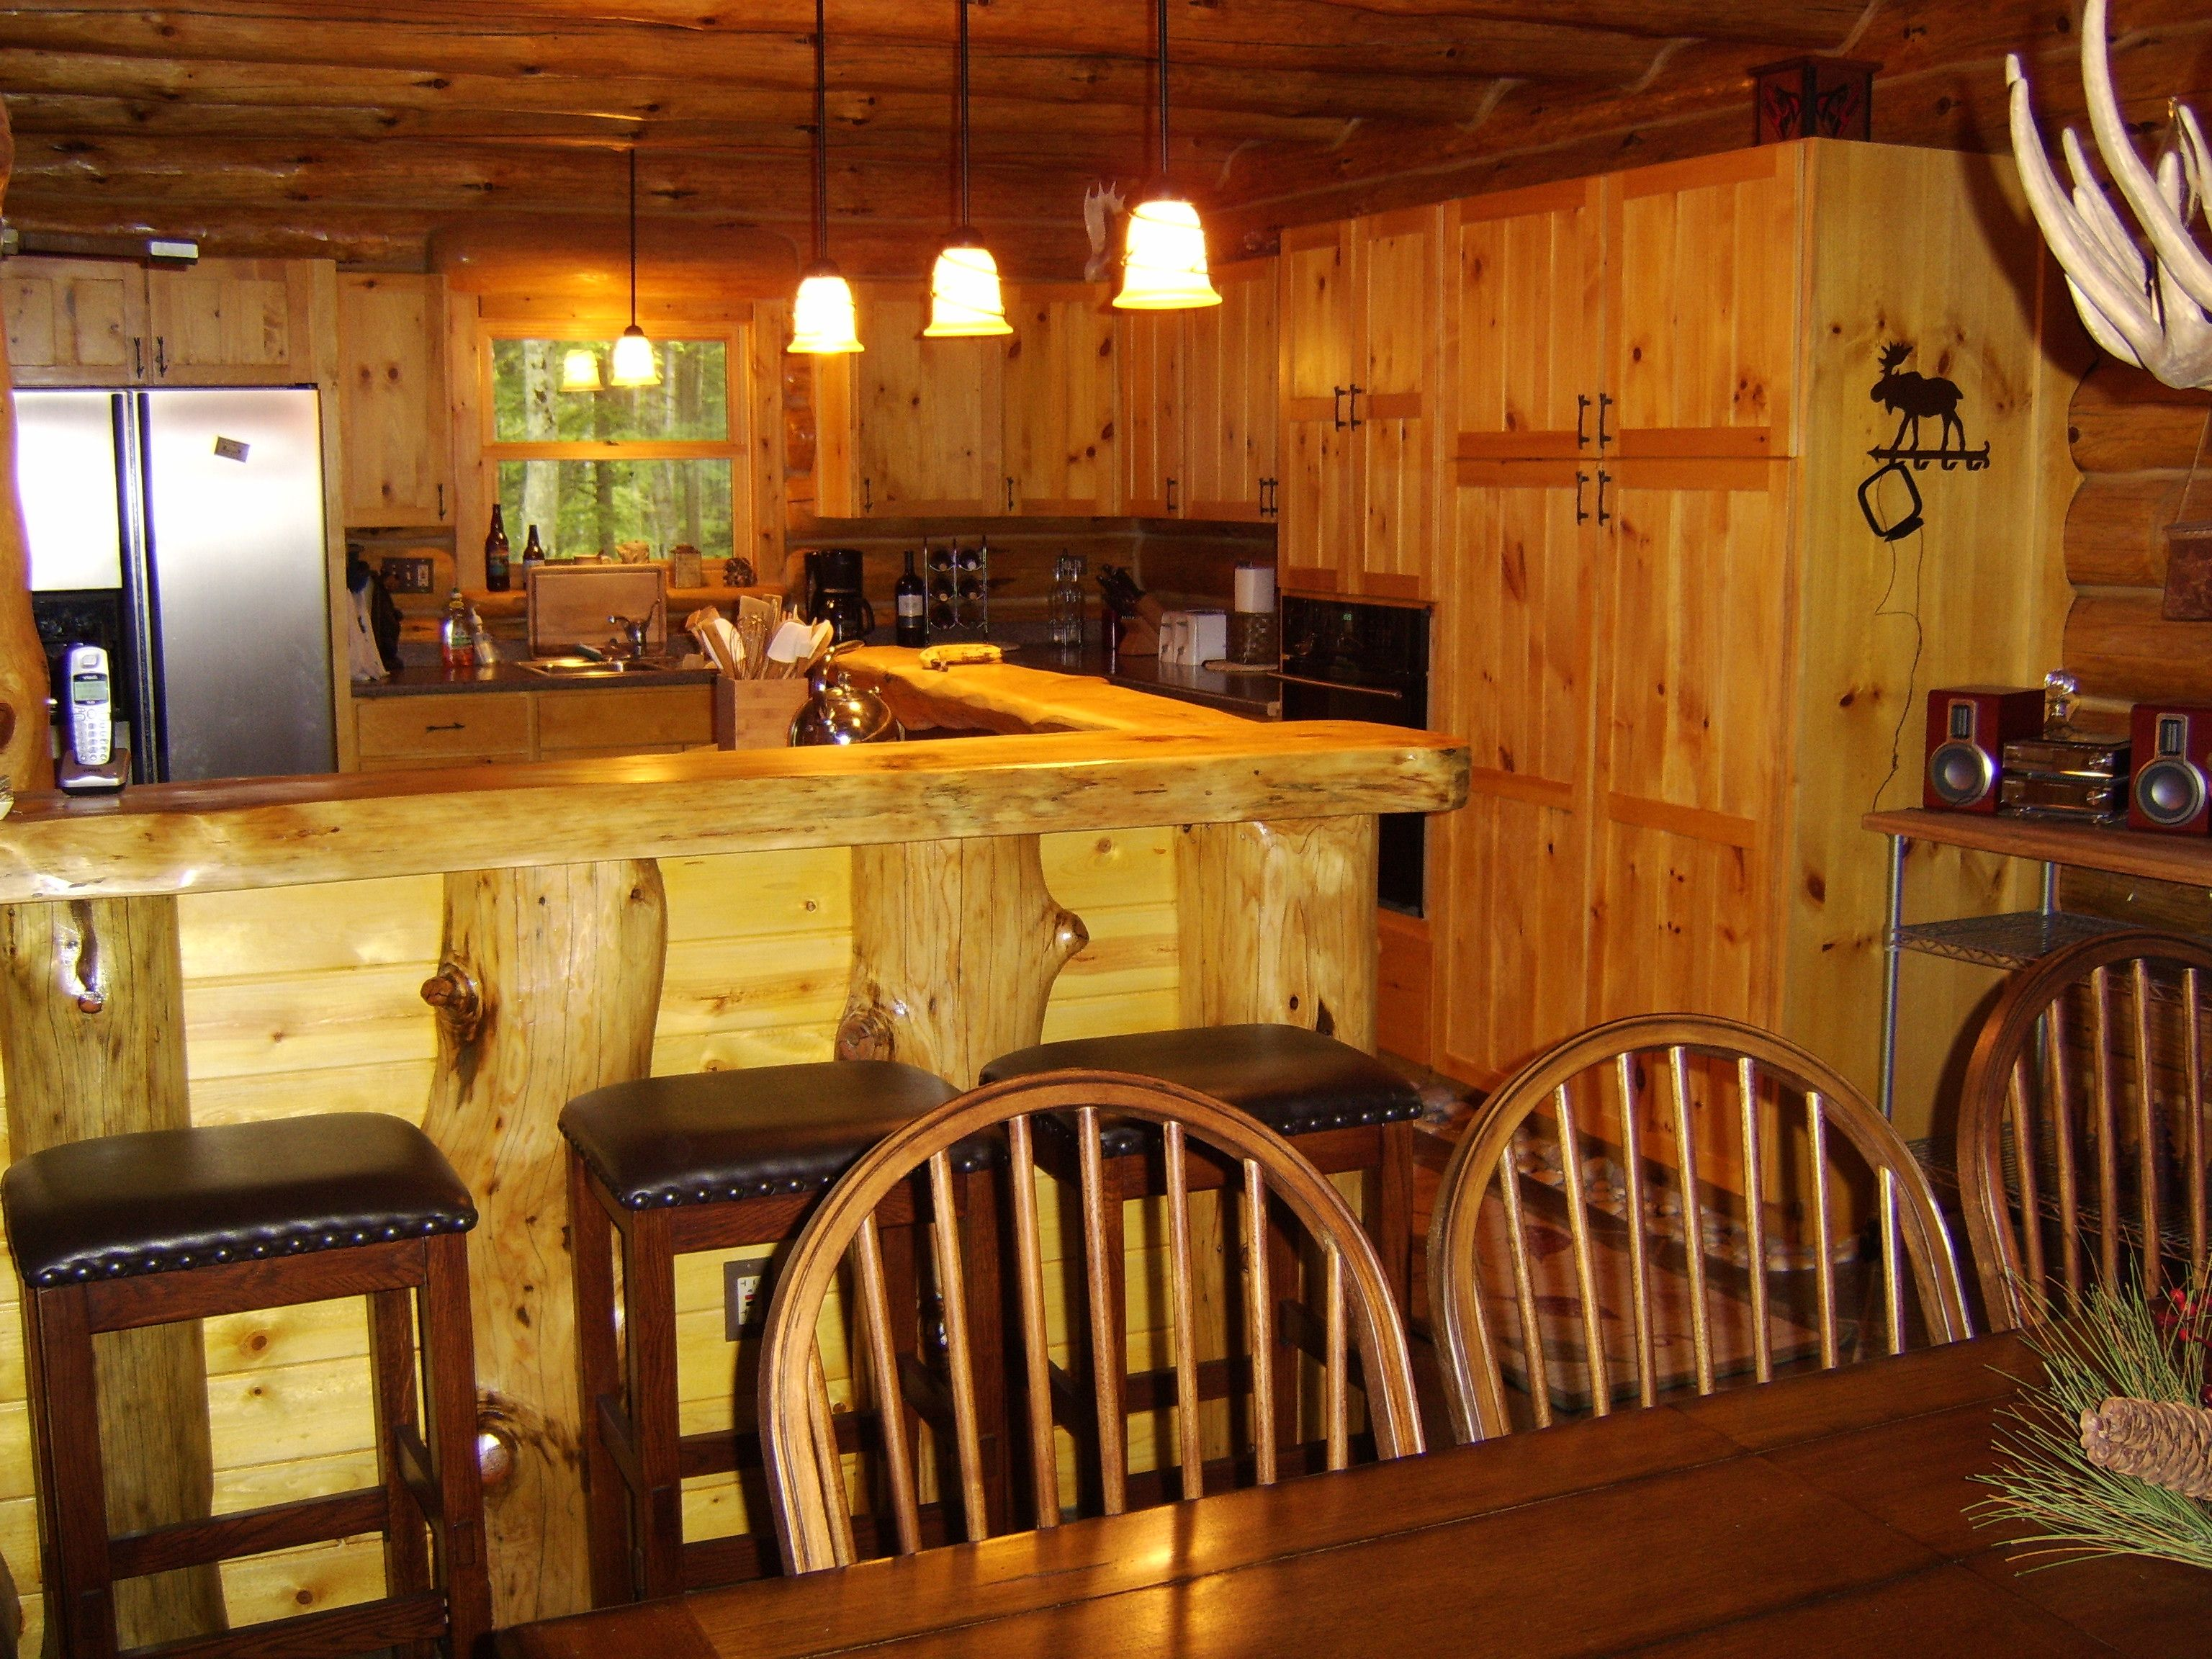 rental relaxing vrbo cottages beautiful northern nce rentals for cabin cabins city and on traverse lake mi in place re scenery vacation rent at charlevoix michigan